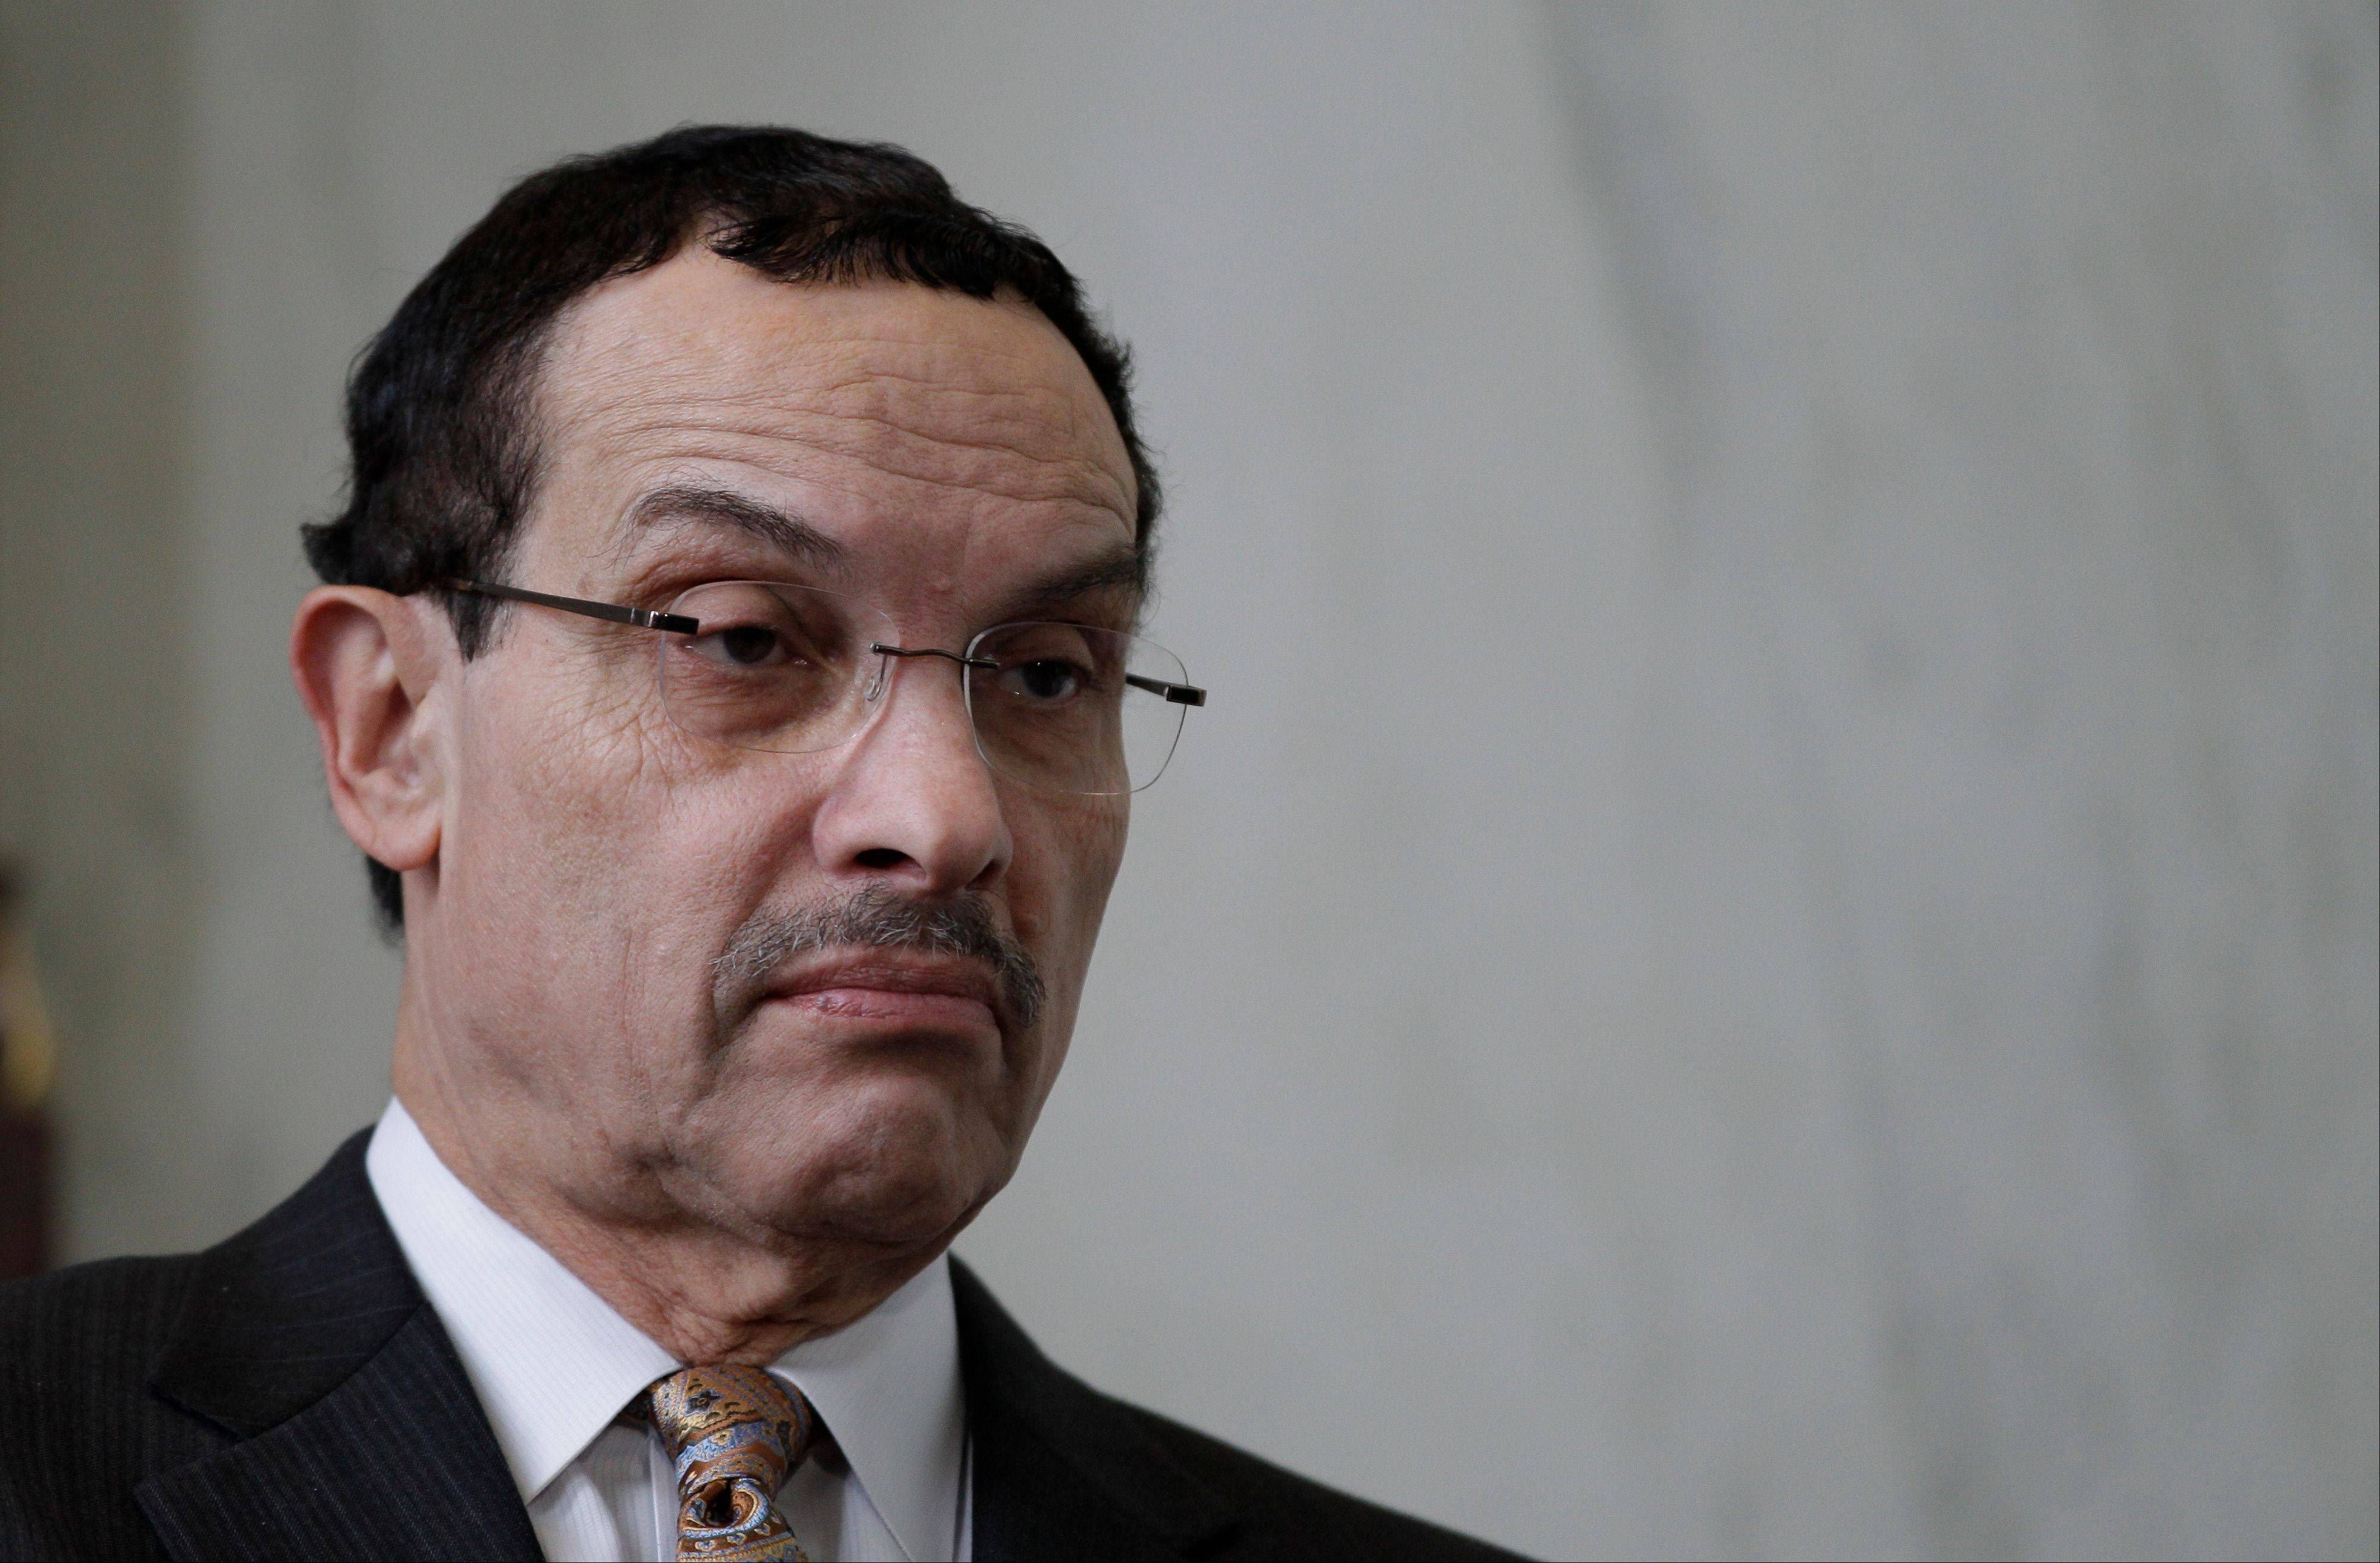 Campaign workers for Washington, D.C., Mayor Vincent Gray tell The Associated Press that day laborers who worked at polling places on Gray�s behalf in 2010 were routinely paid $100 in cash � twice the legal limit.